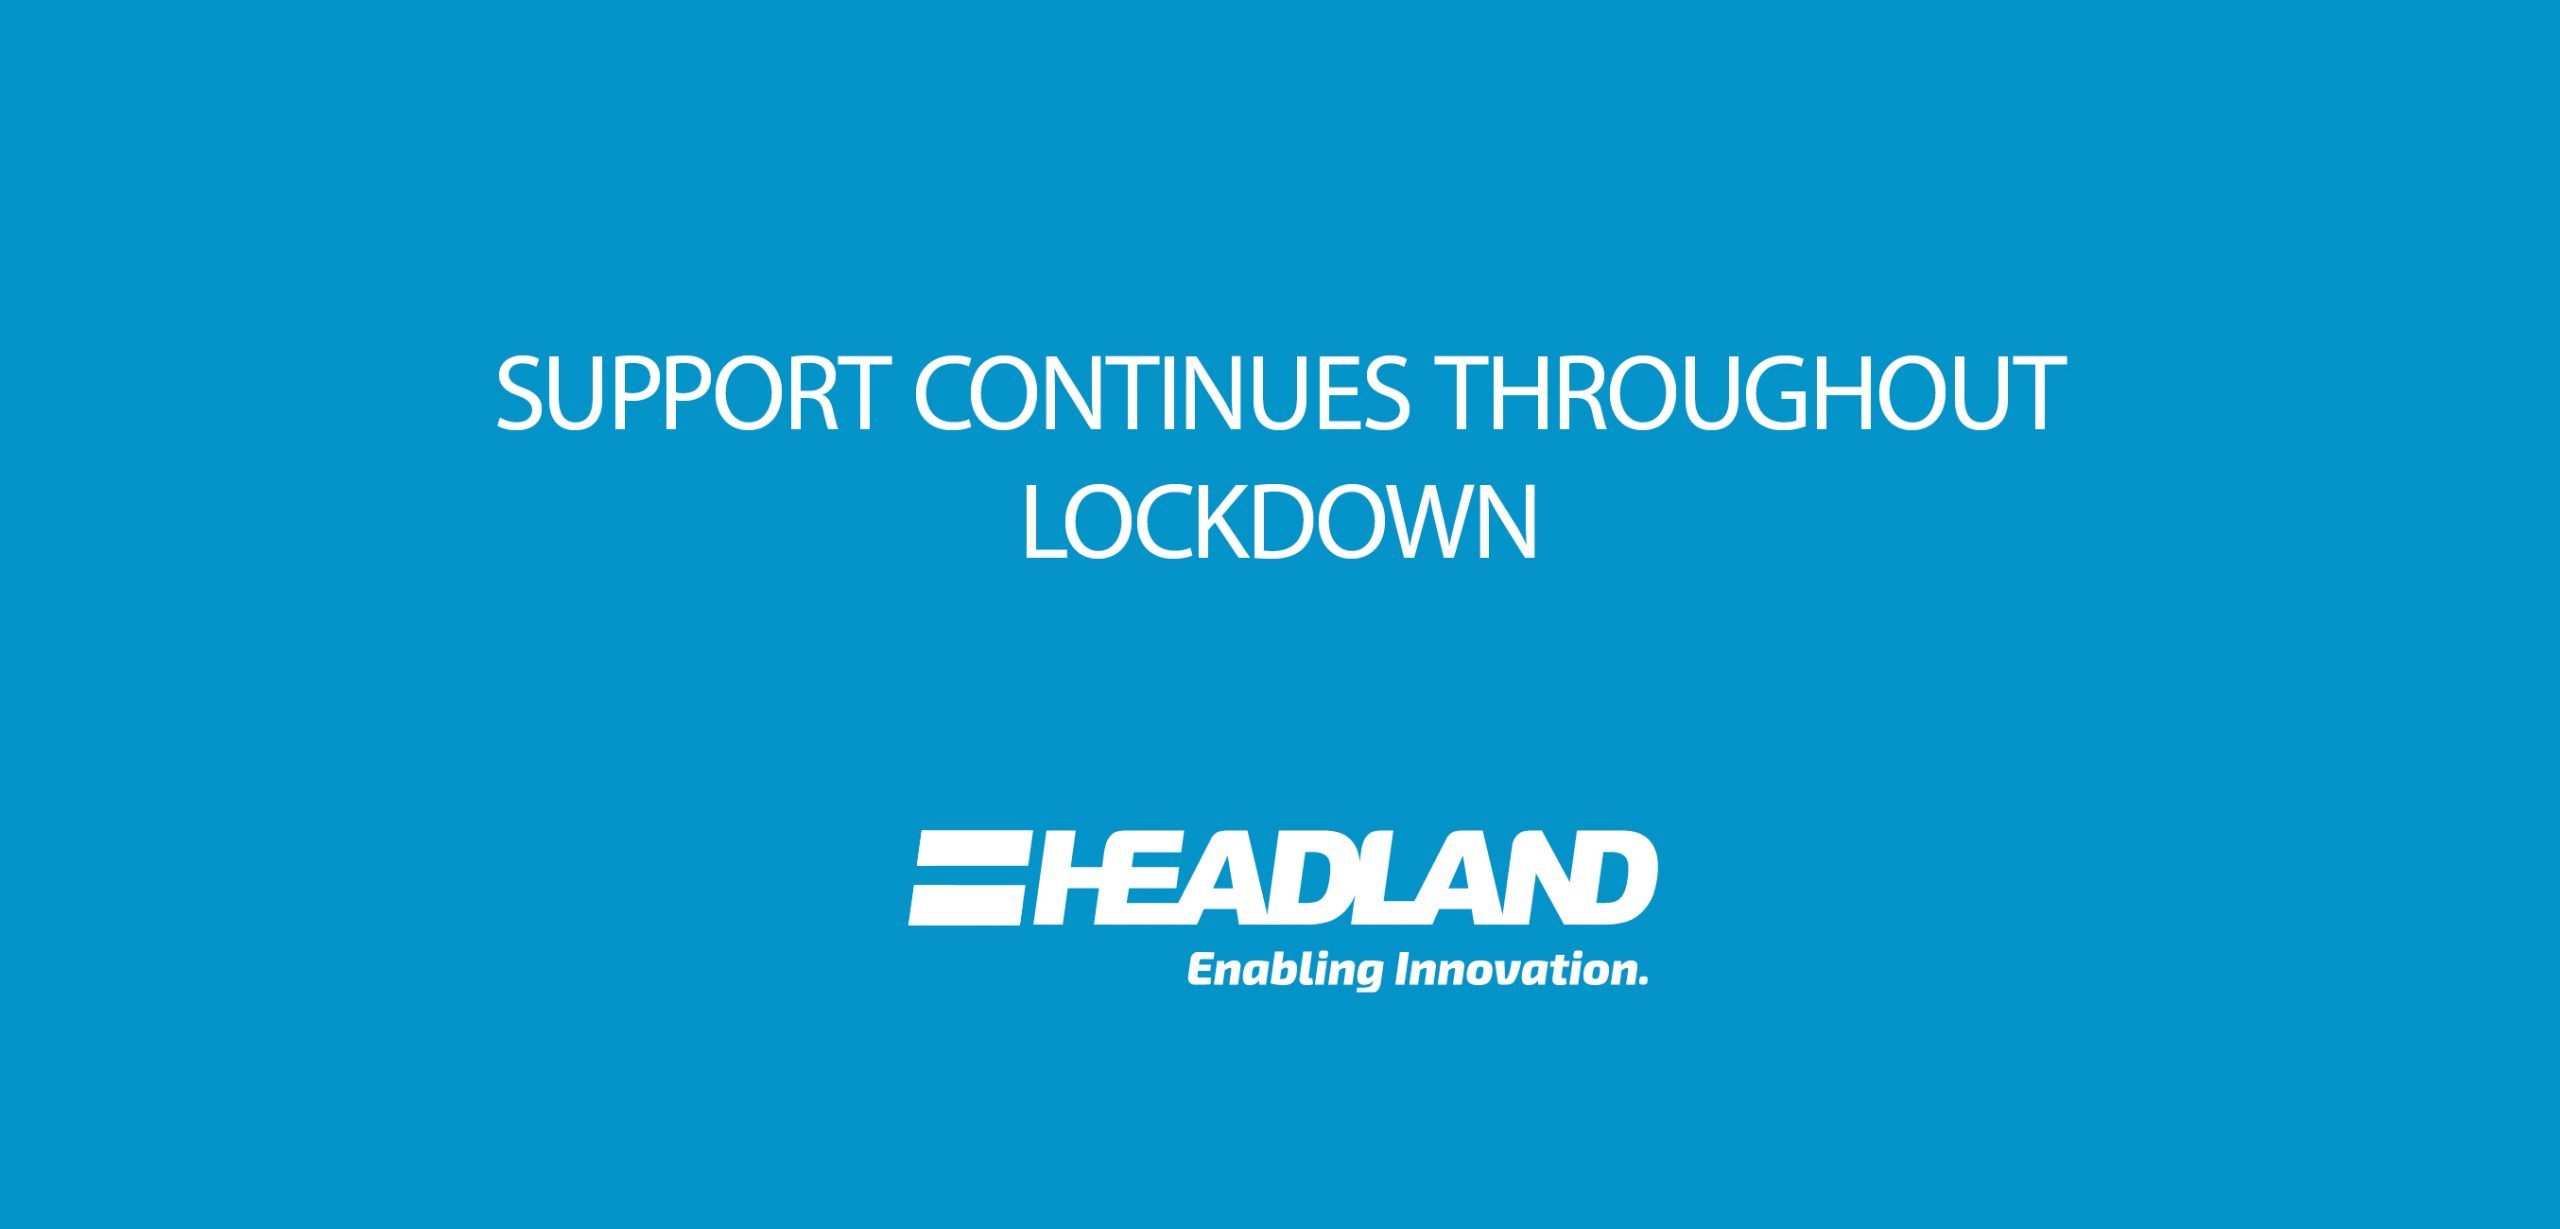 Lockdown support continues